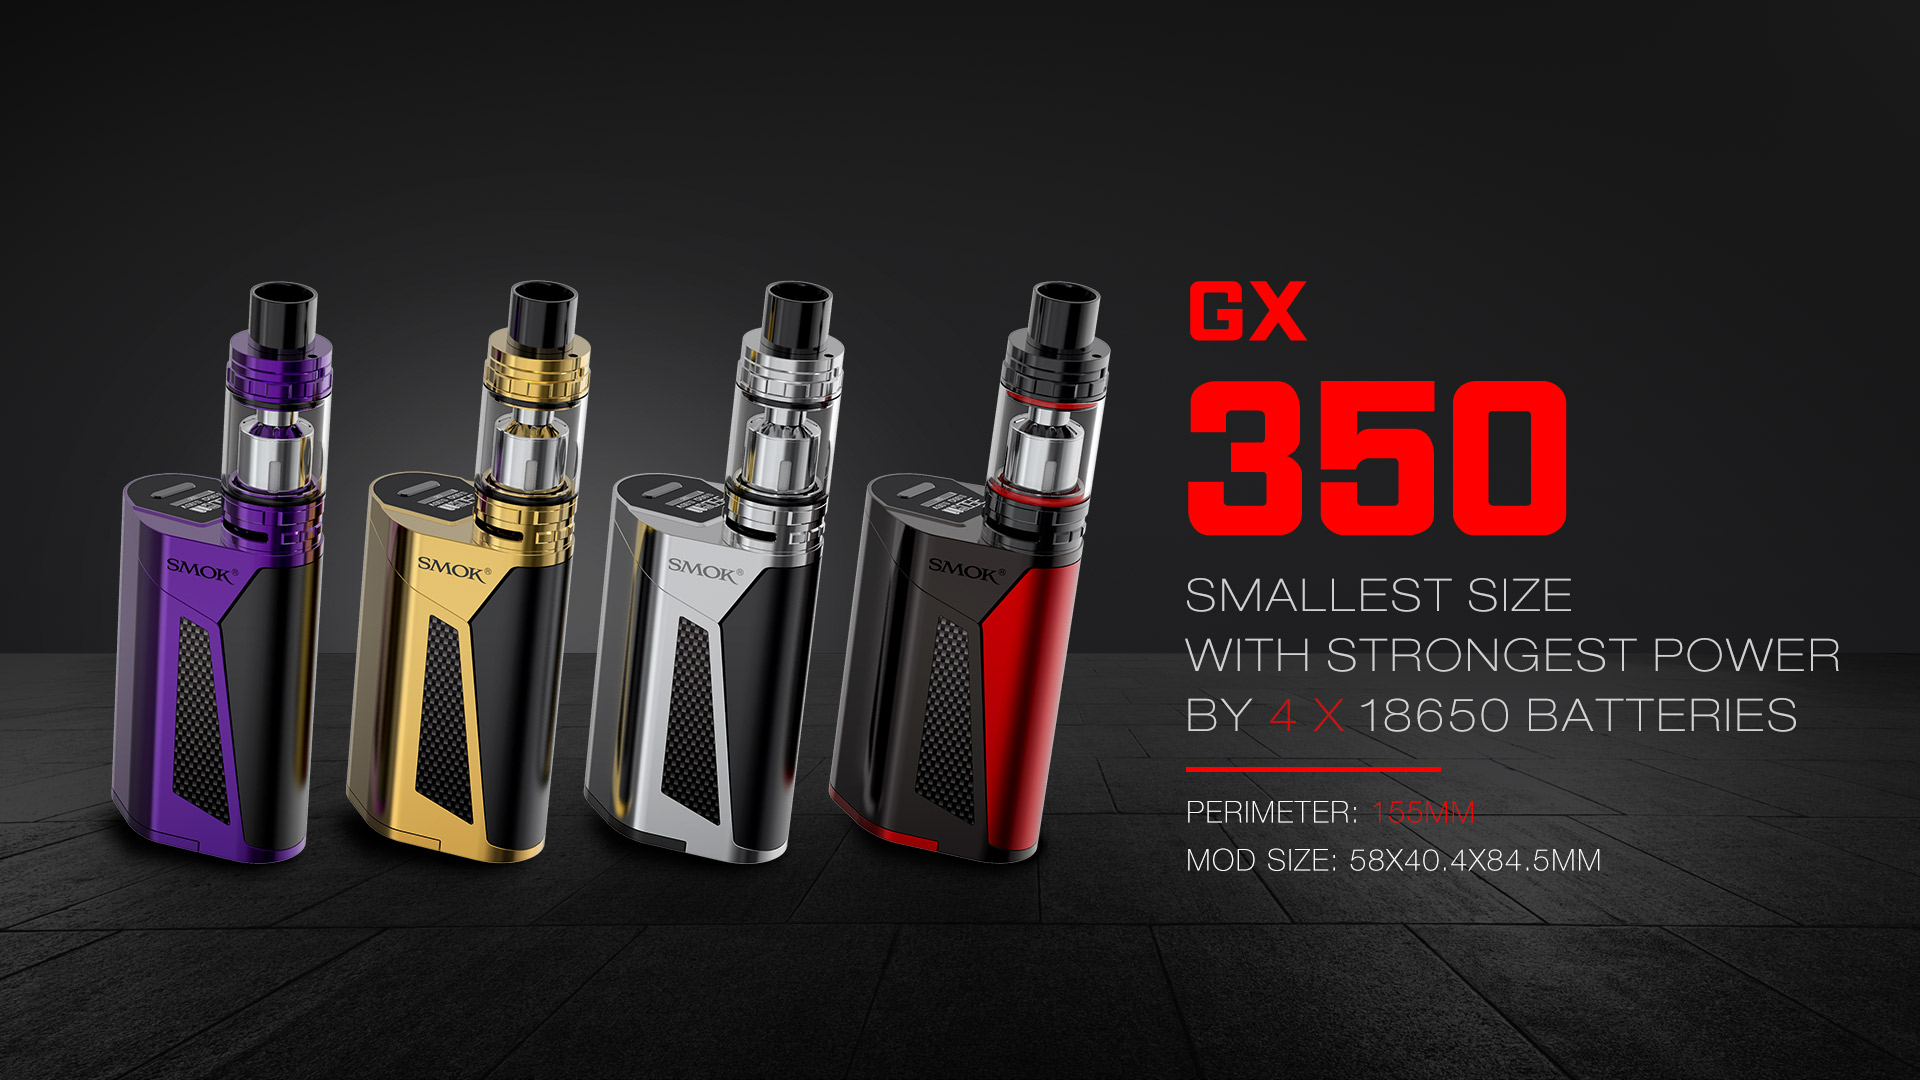 Gx350 Smok 174 Innovation Keeps Changing The Vaping Experience